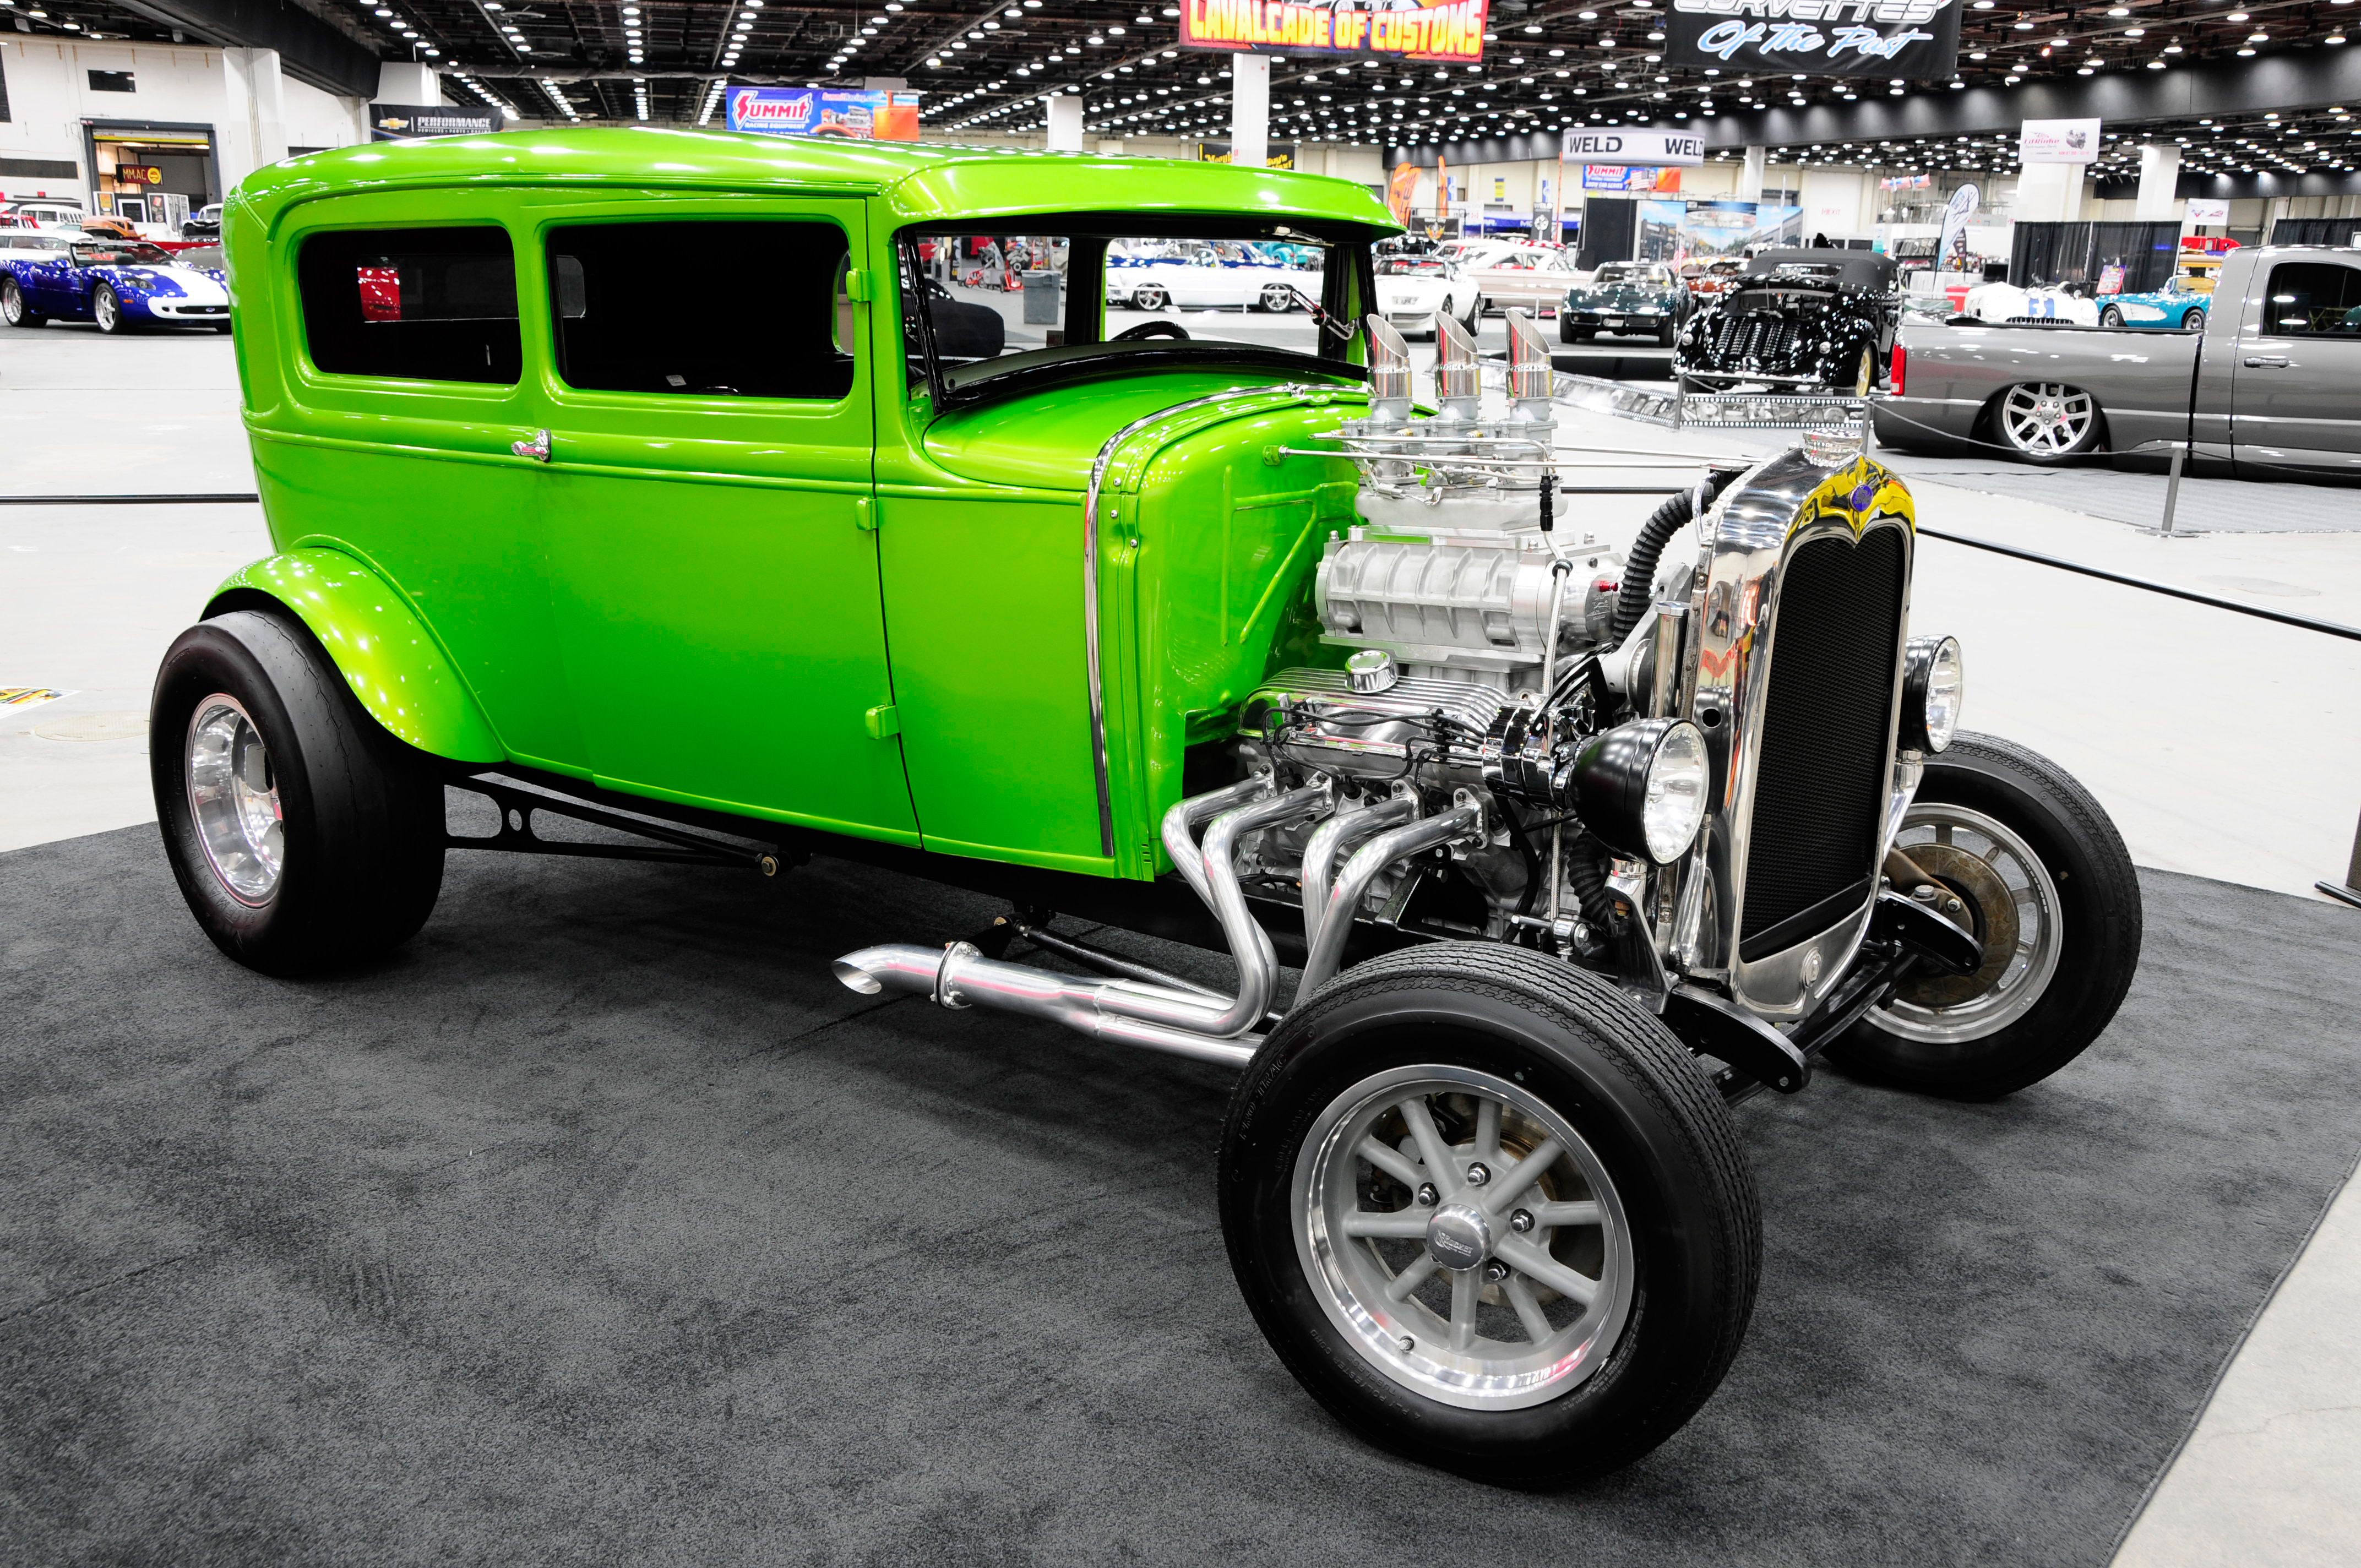 ford 1930 green model b | hot rod's | pinterest | ford, car tuning